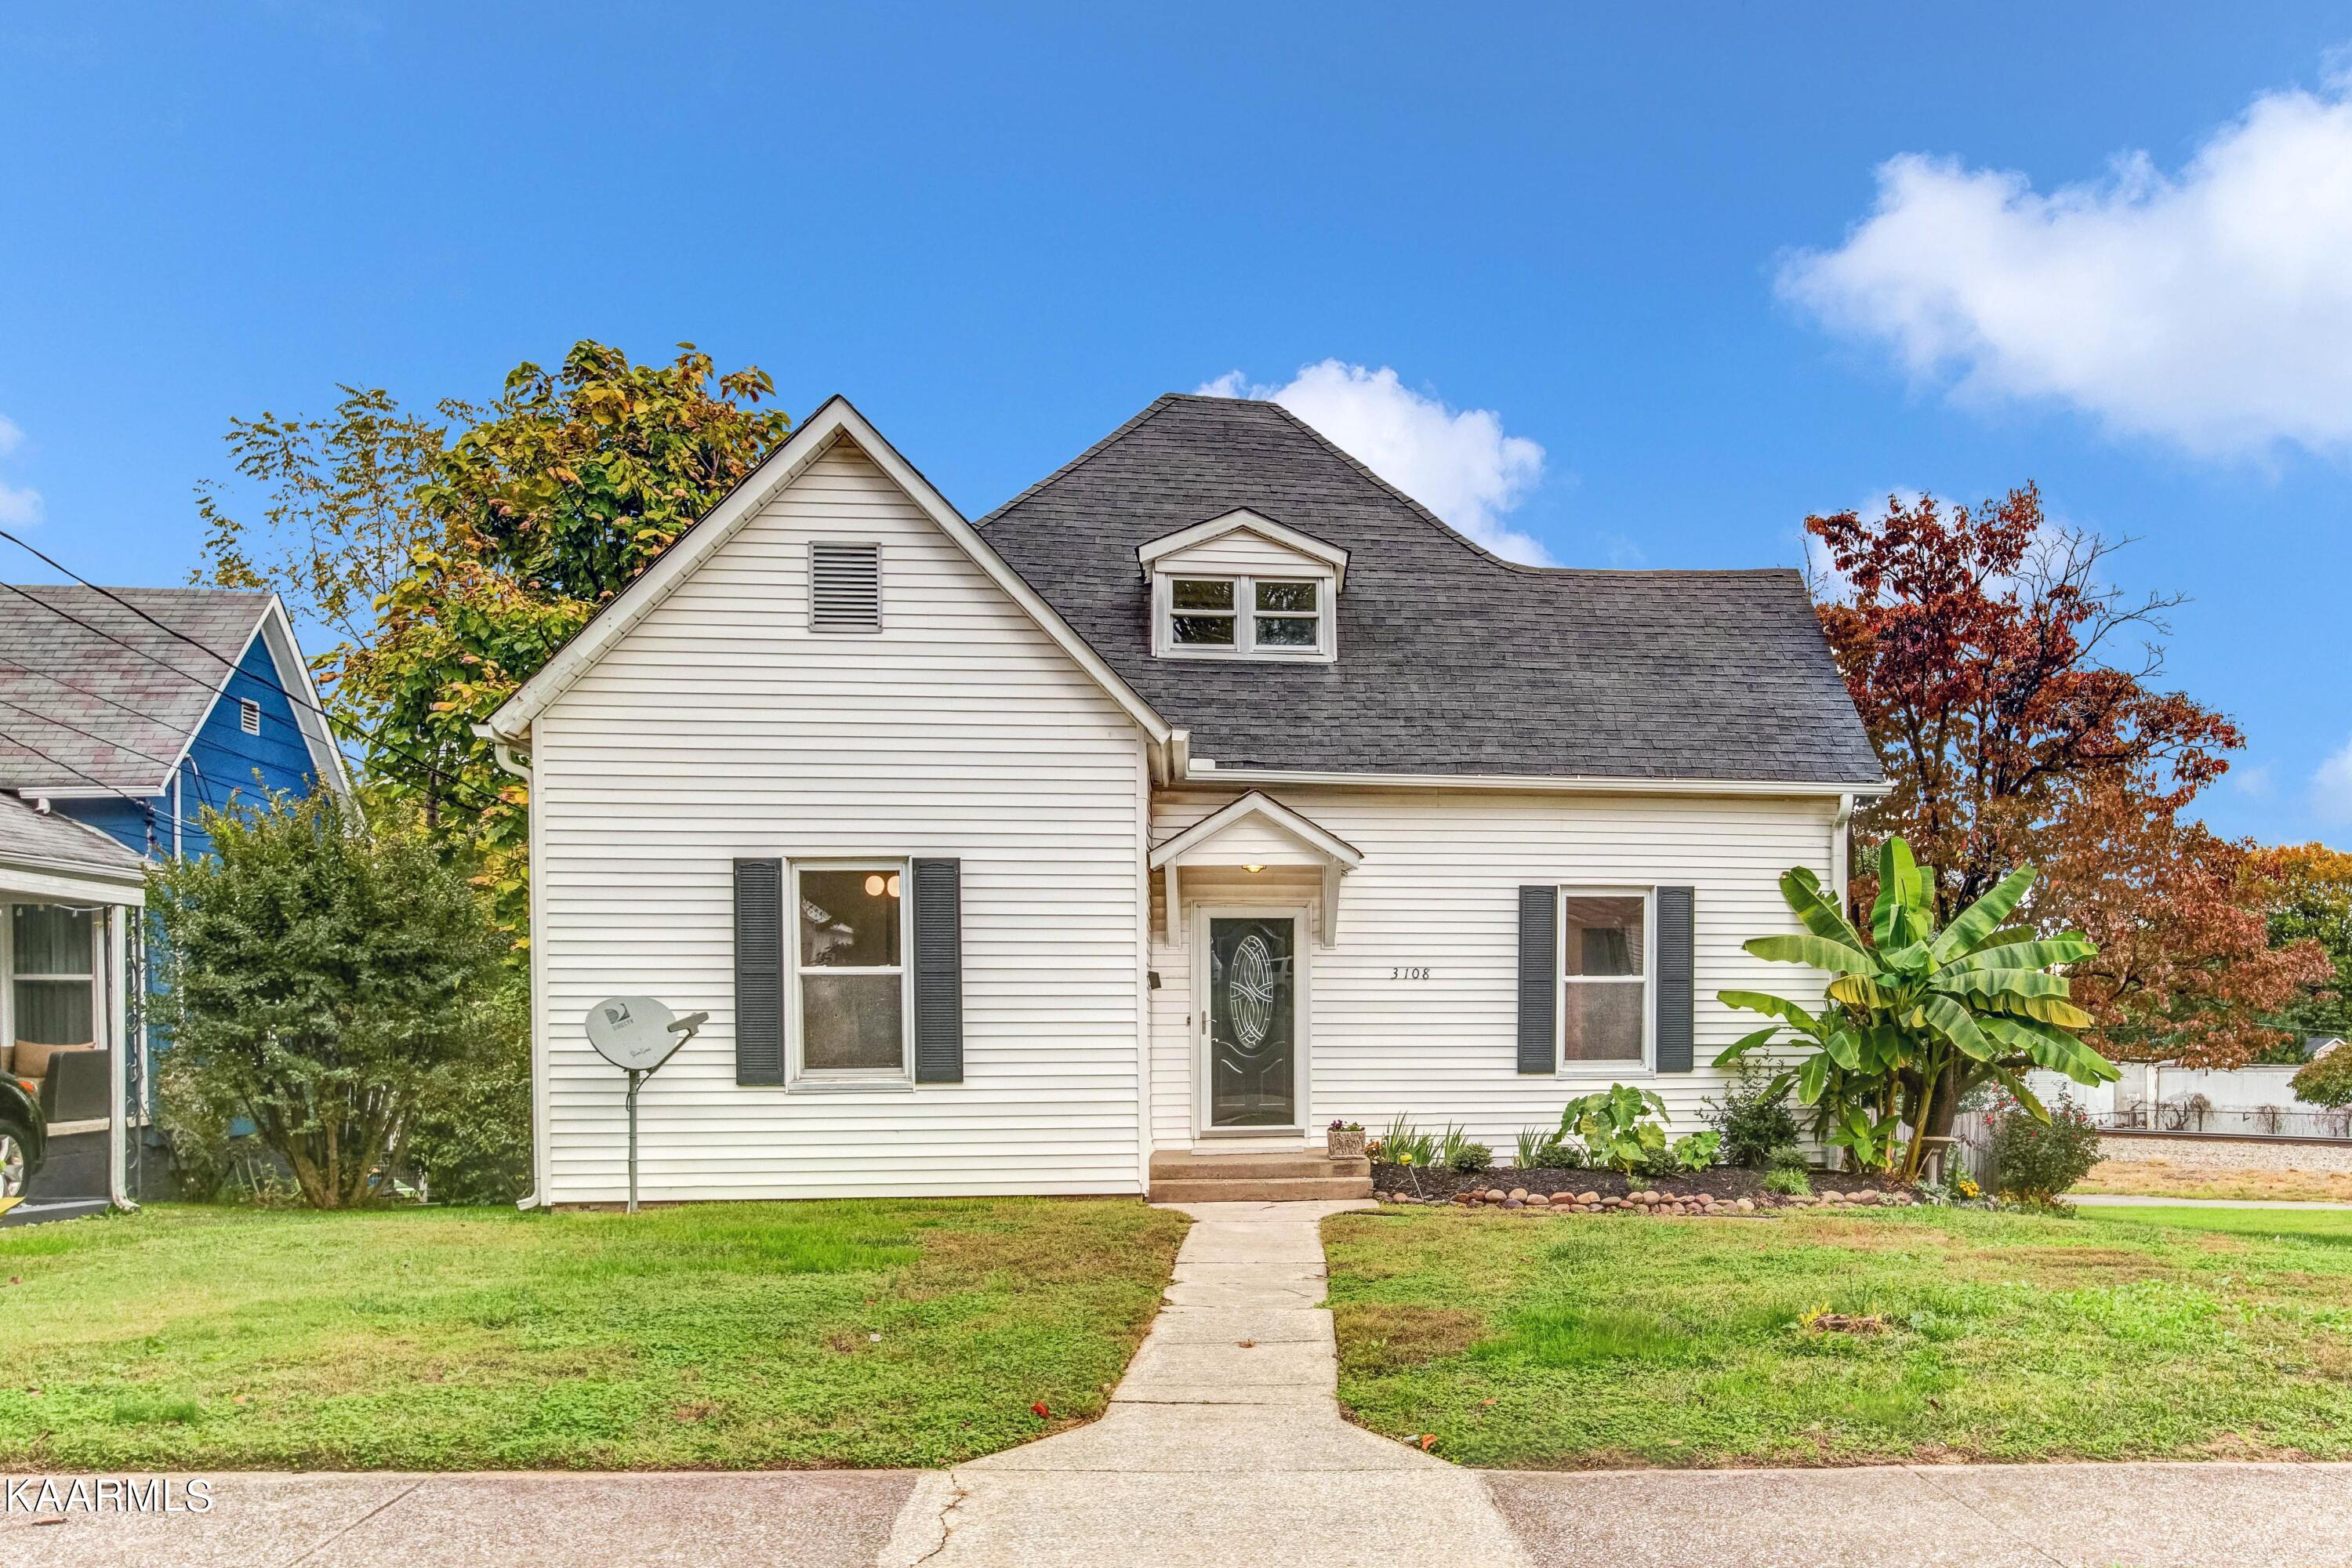 3108 Pershing St, Knoxville, TN 37917